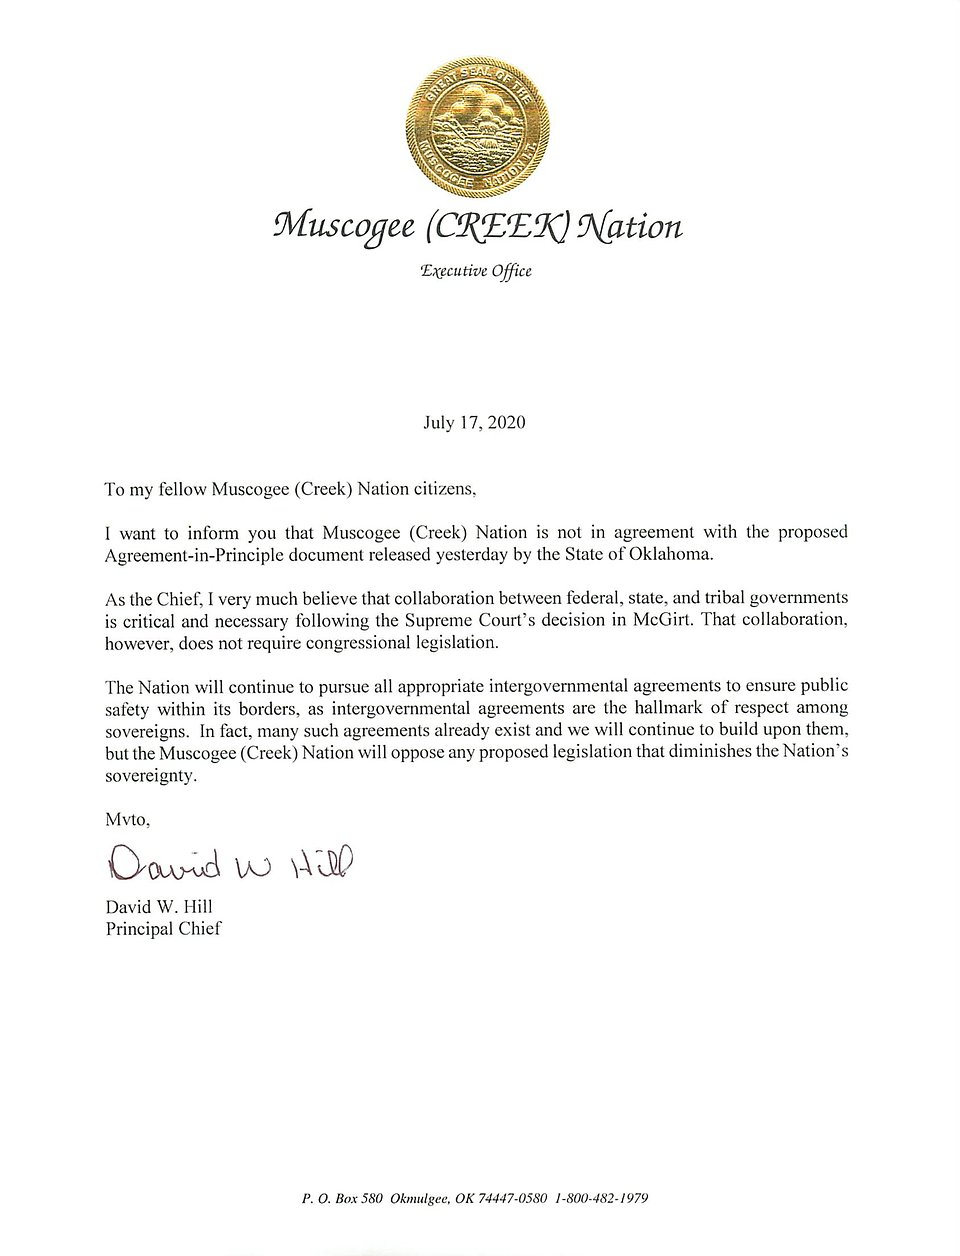 Letter proposed agreeement in principal with State.jpg